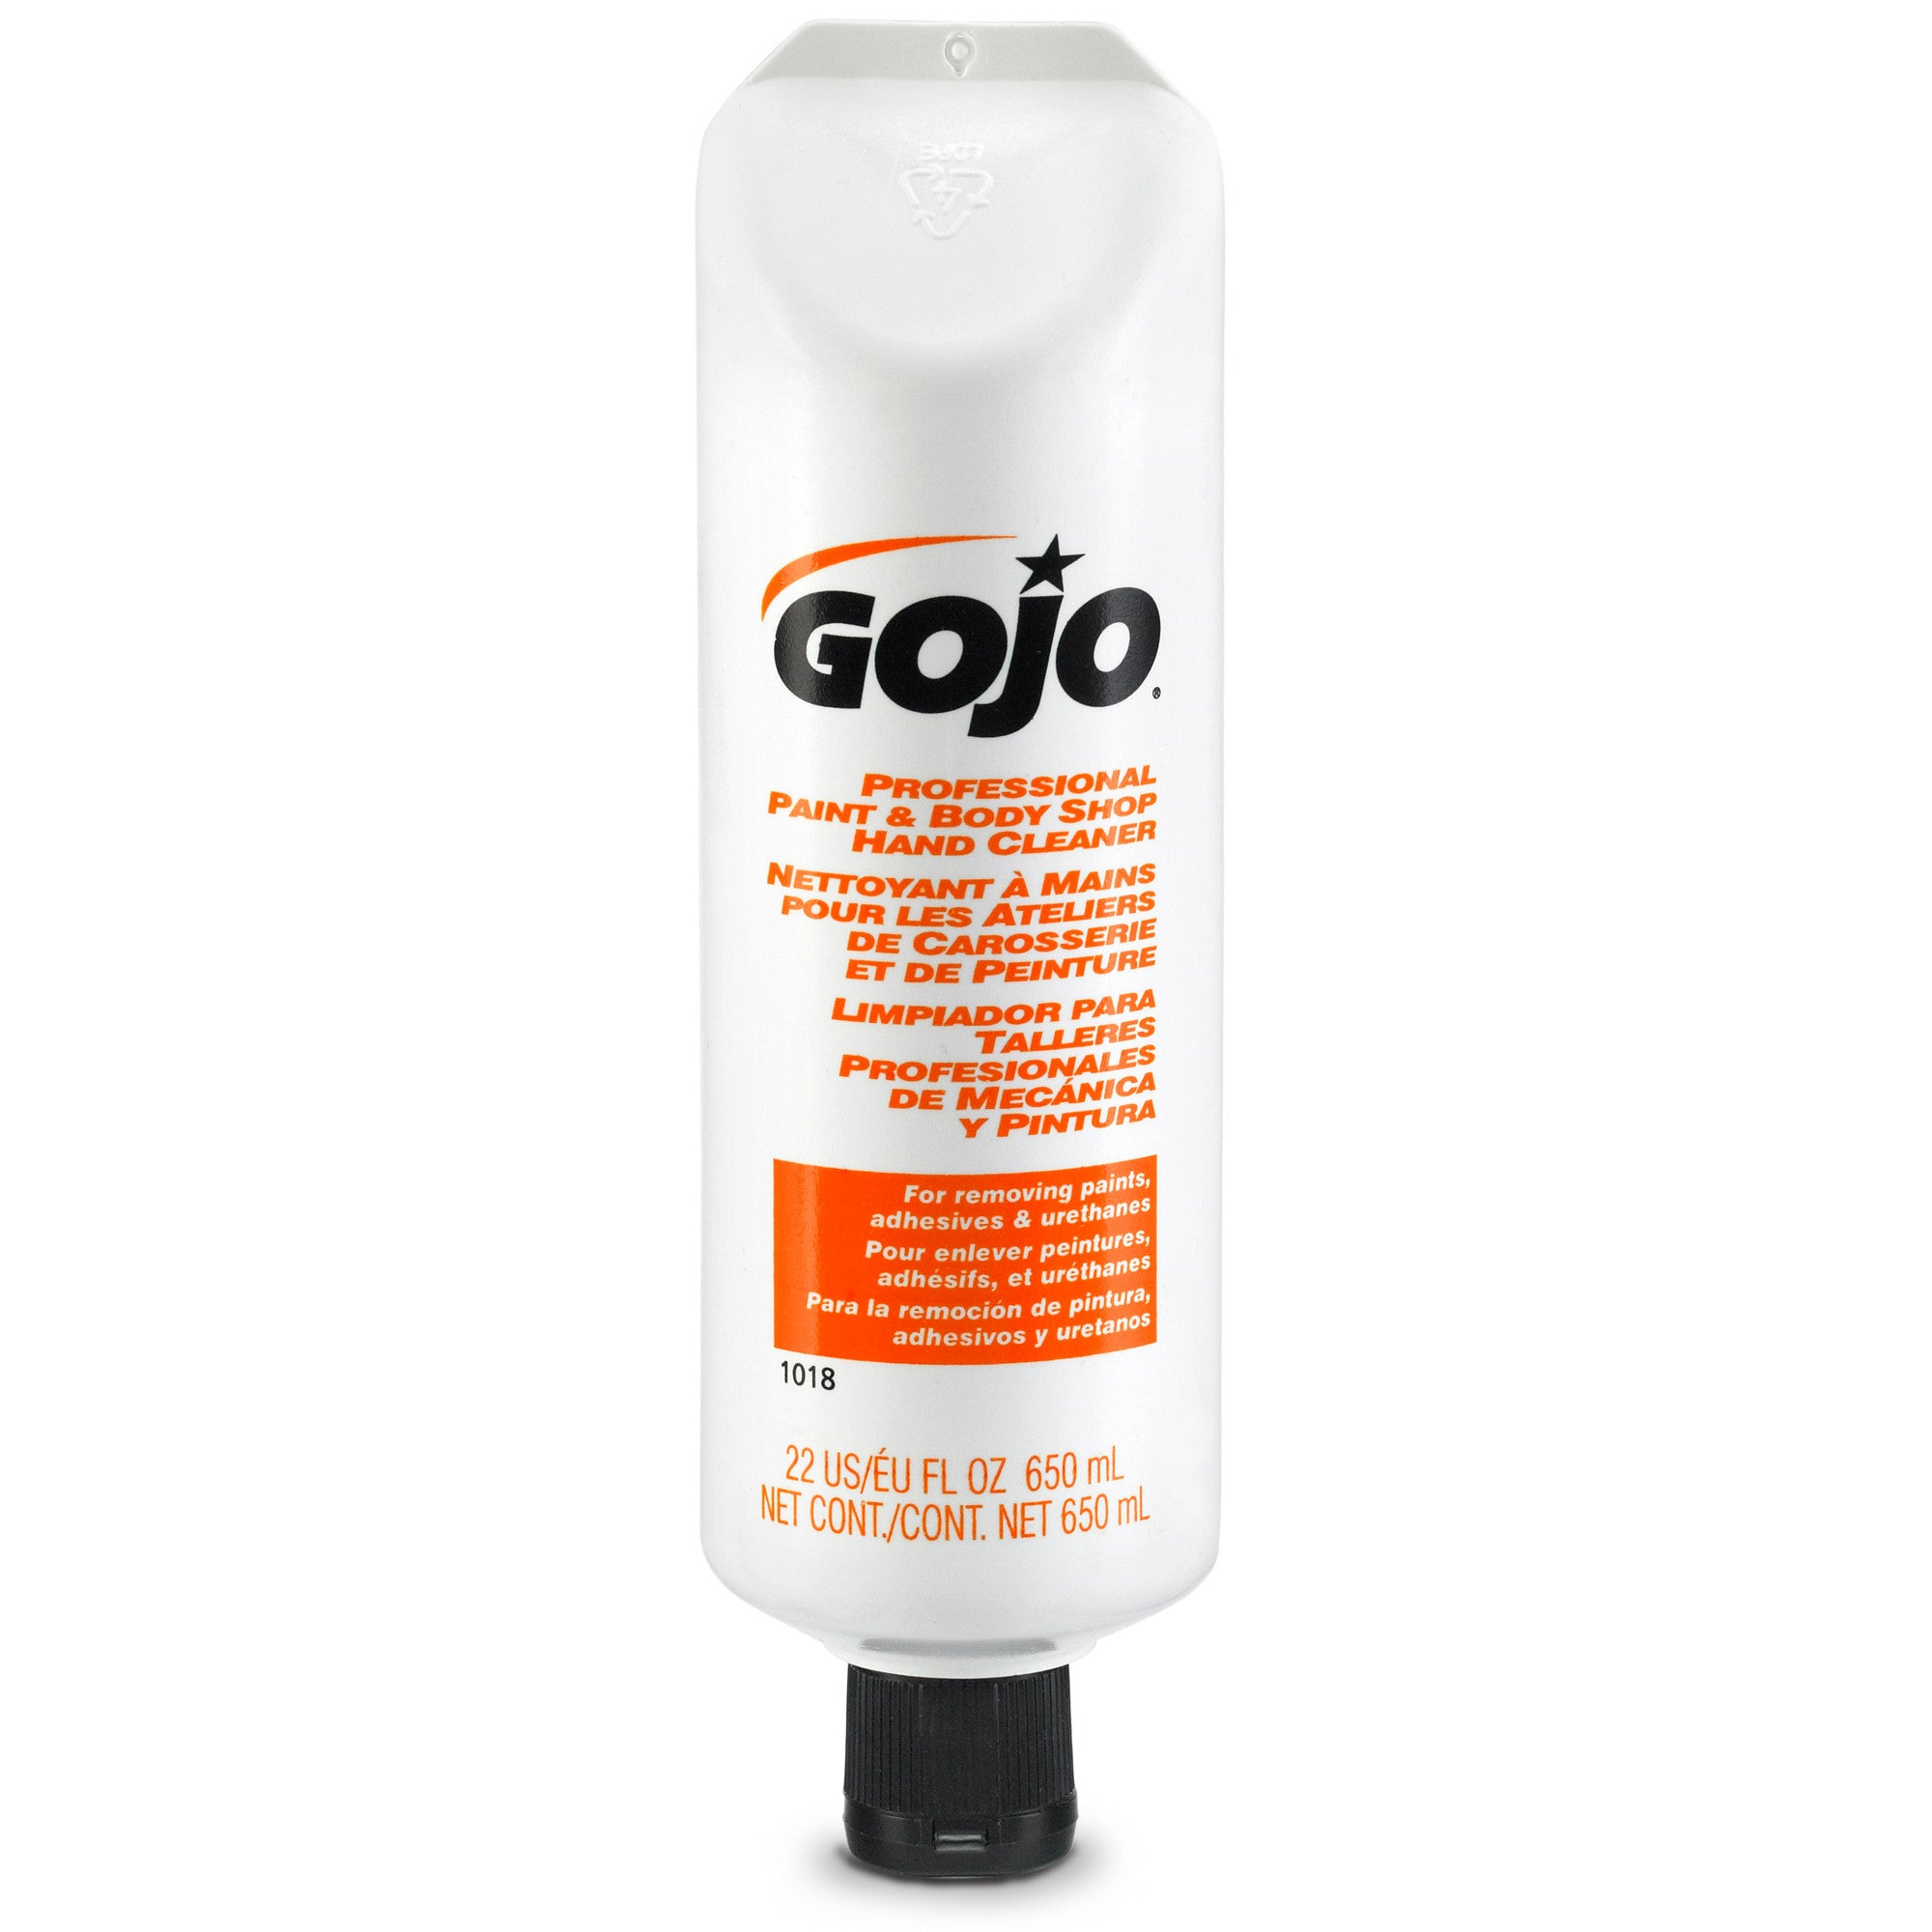 GOJO® Professional Paint & Body Shop Hand Cleaner 22 fl oz